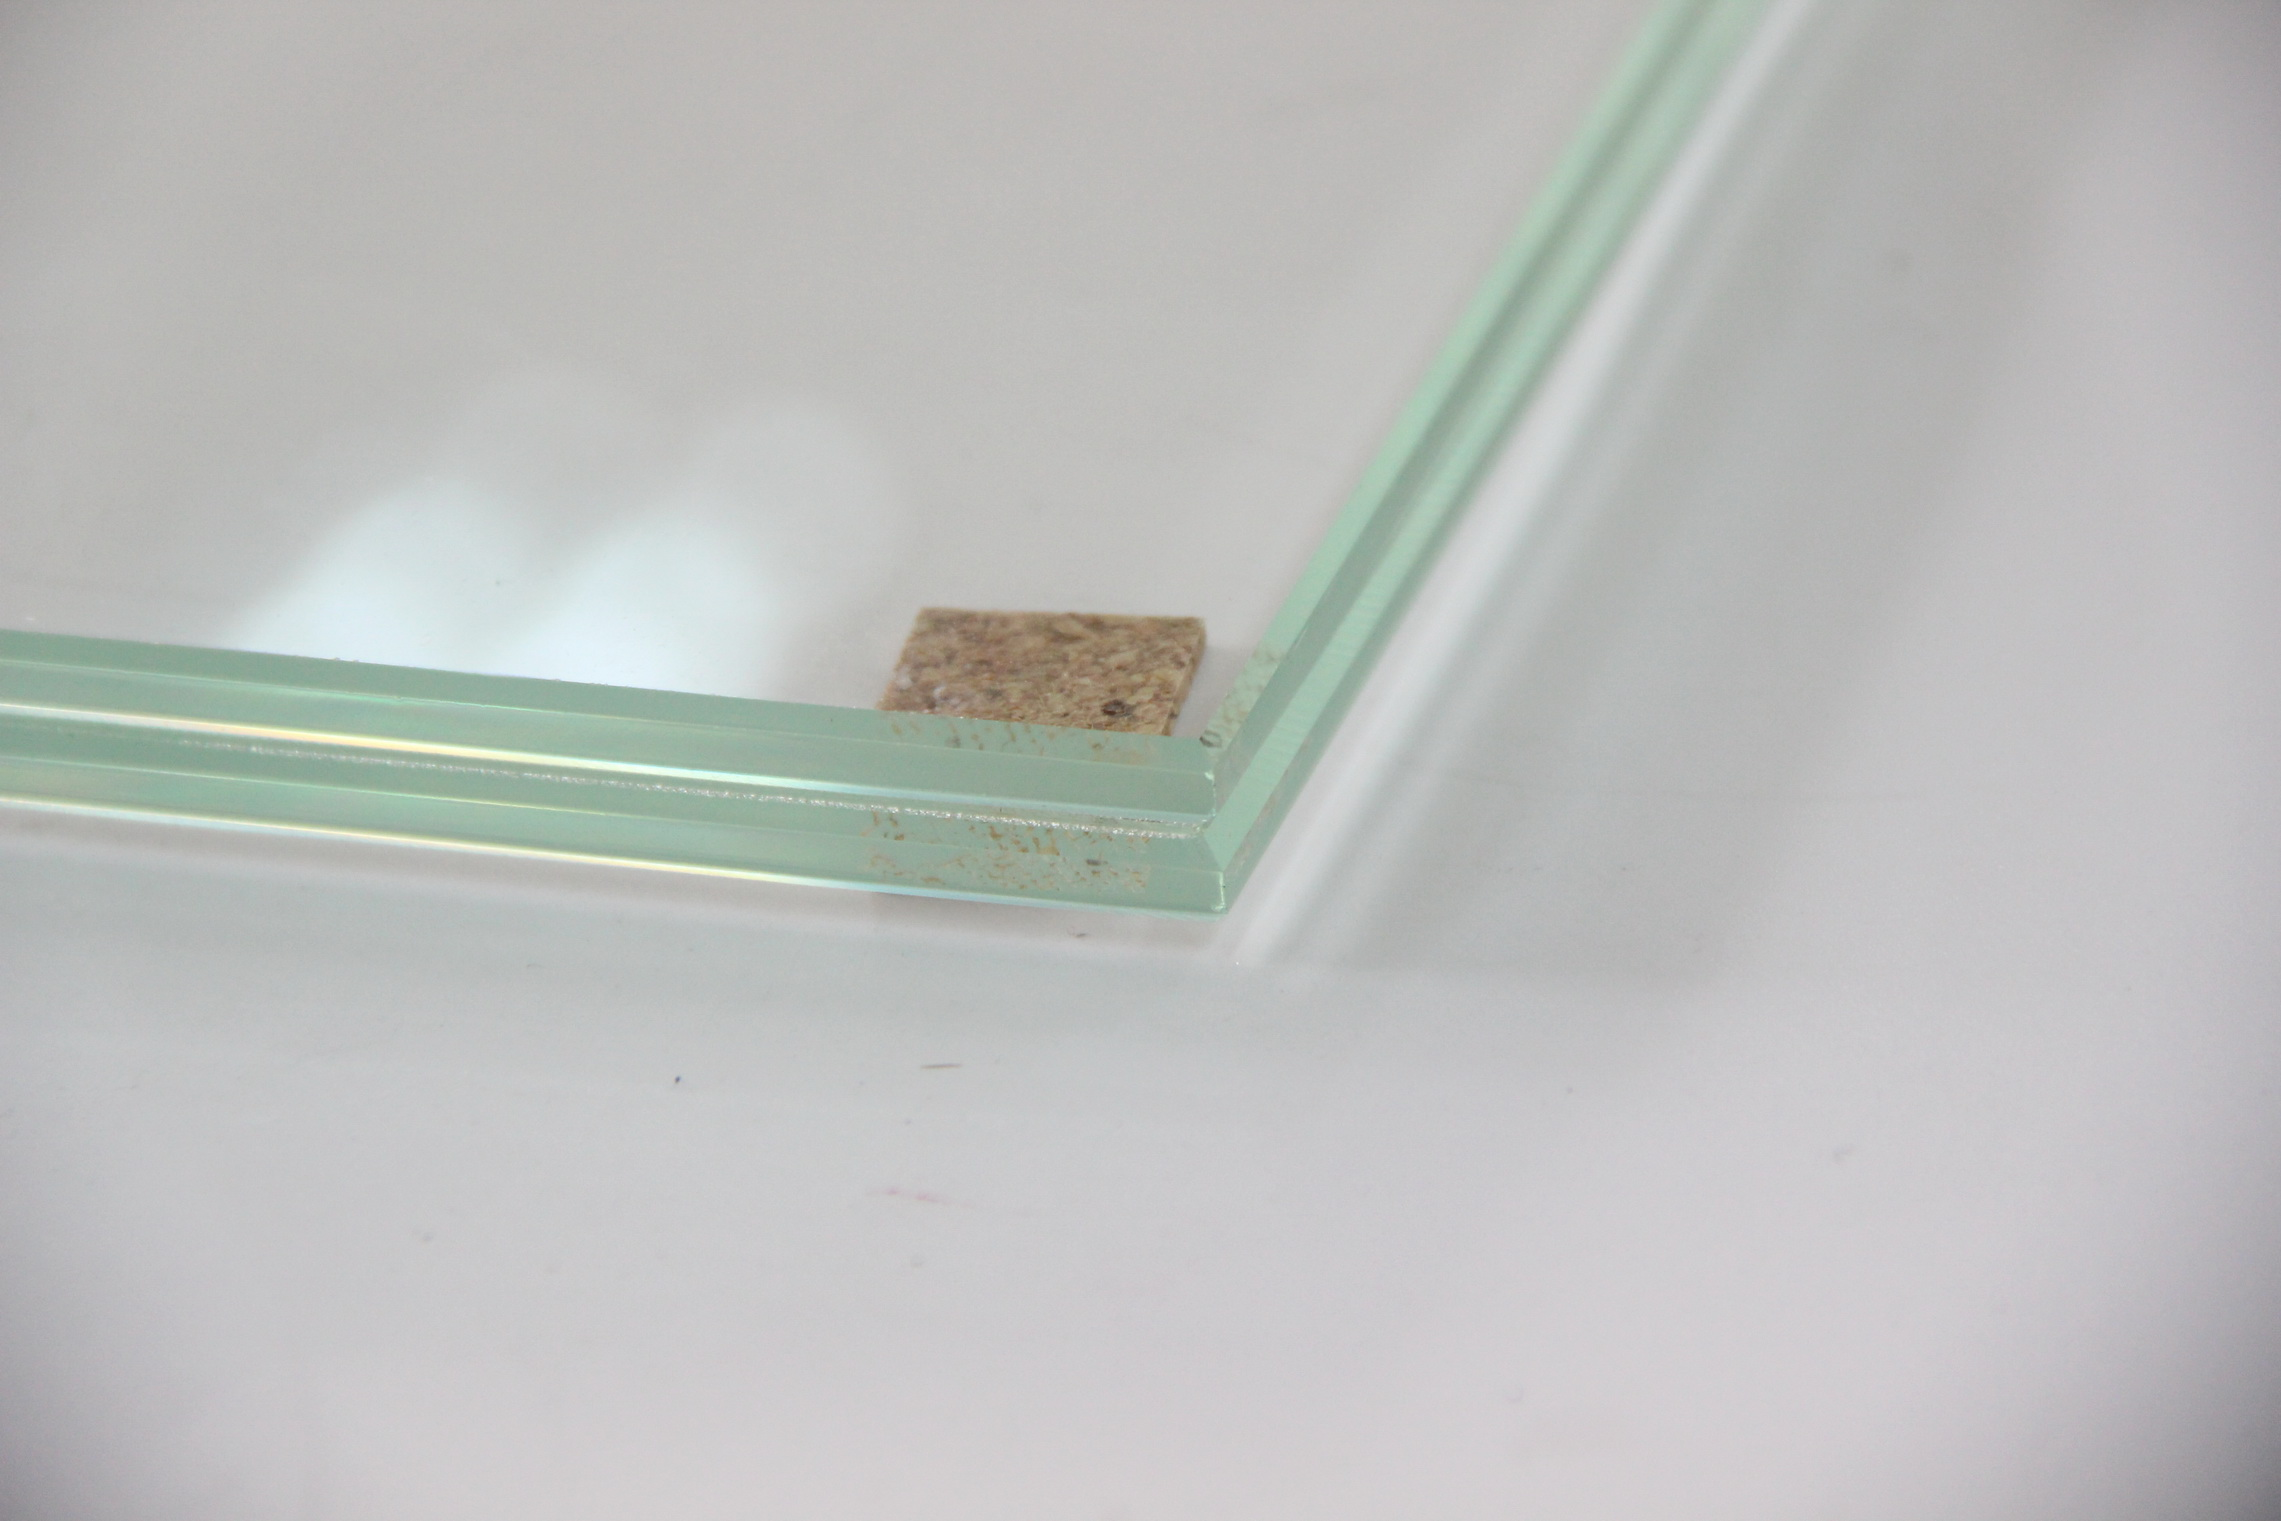 Ultra clear SGP interlayer in 10+1.52+10 laminated glass